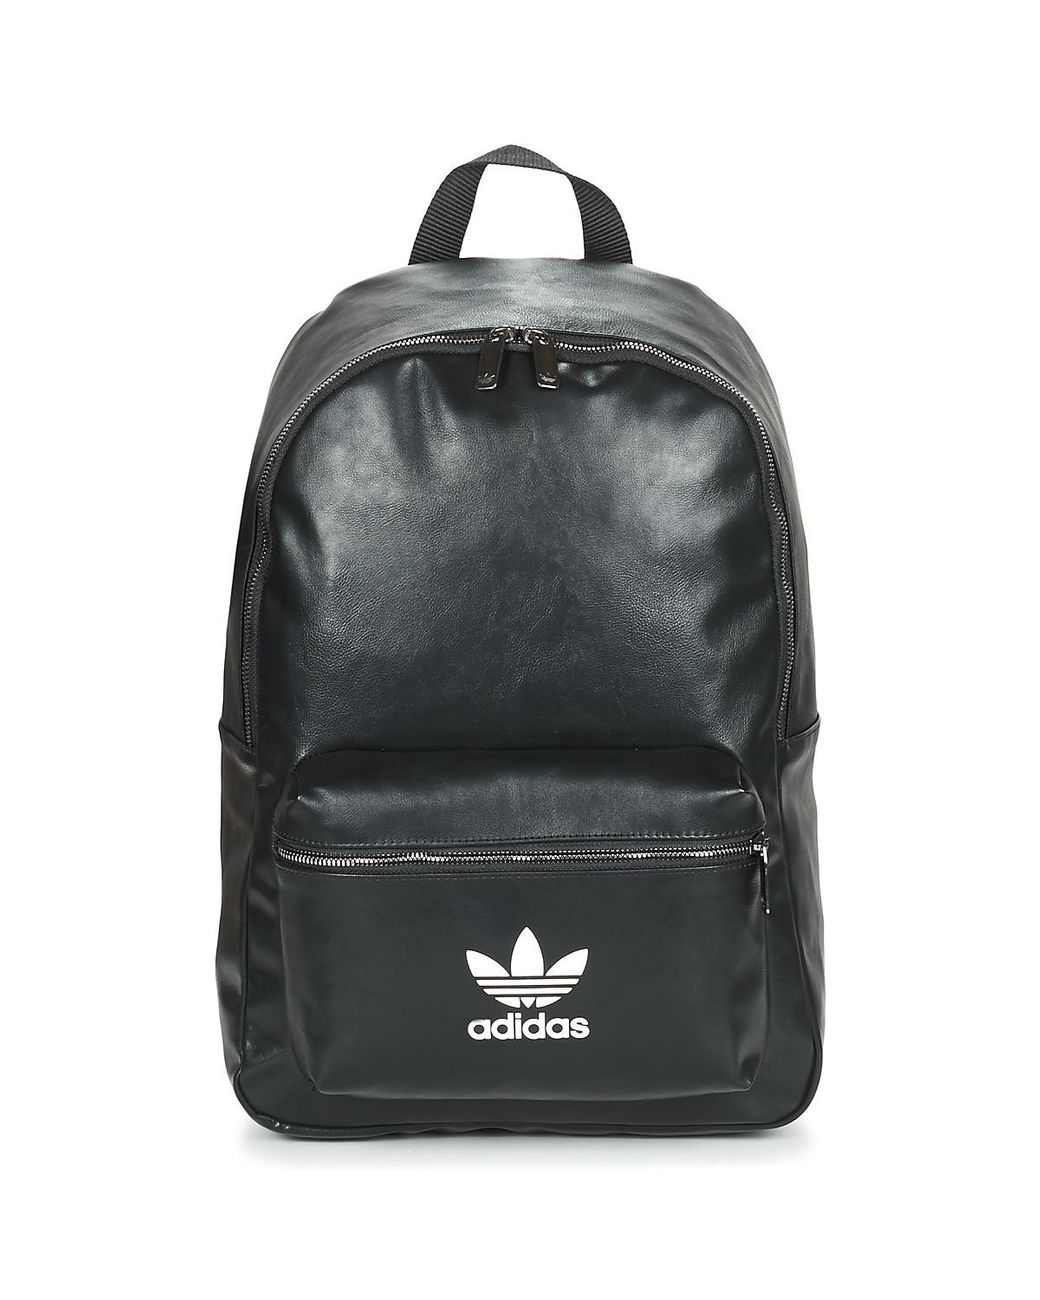 Backpack Adidas Ontisuke Details And Tiger White About Black rsxhdCtQ